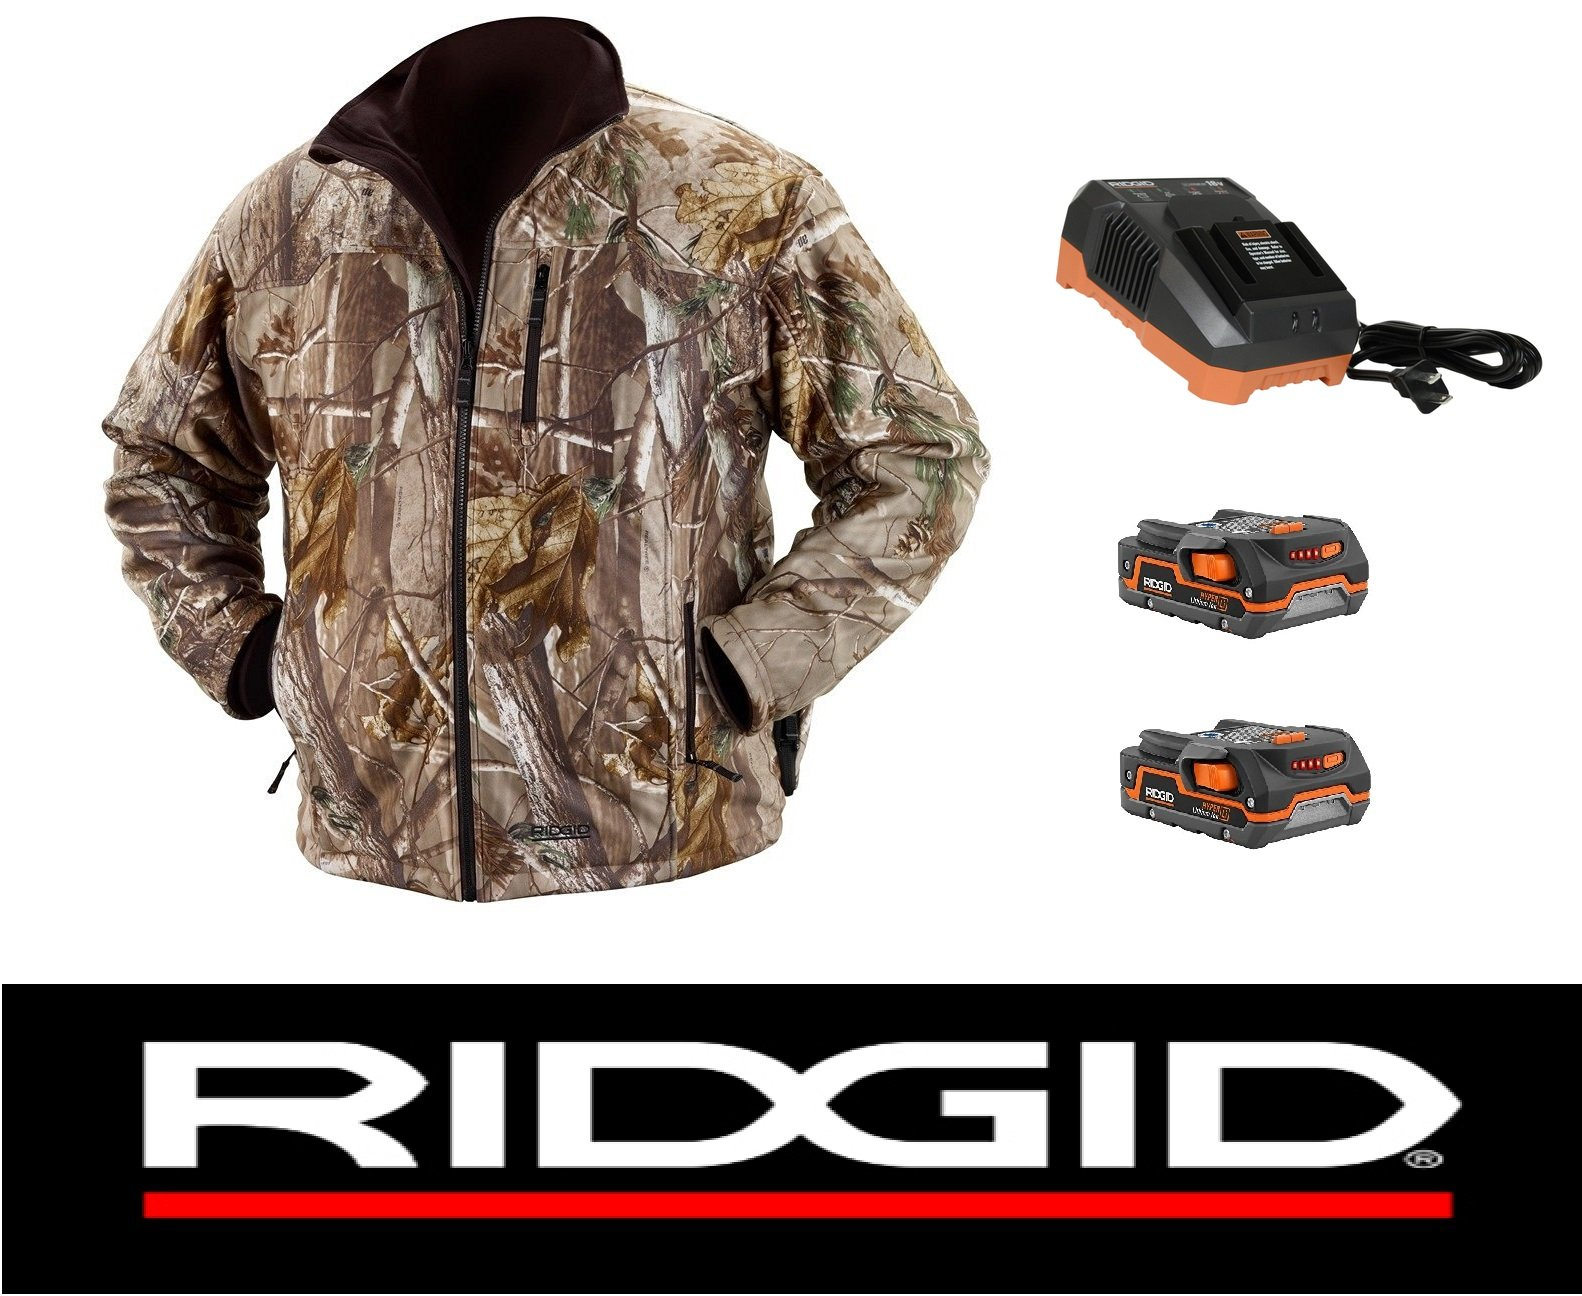 Ridgid 18 Volt Camouflage Heated Jacket Coat with (2) Batteries & Charger (XL)